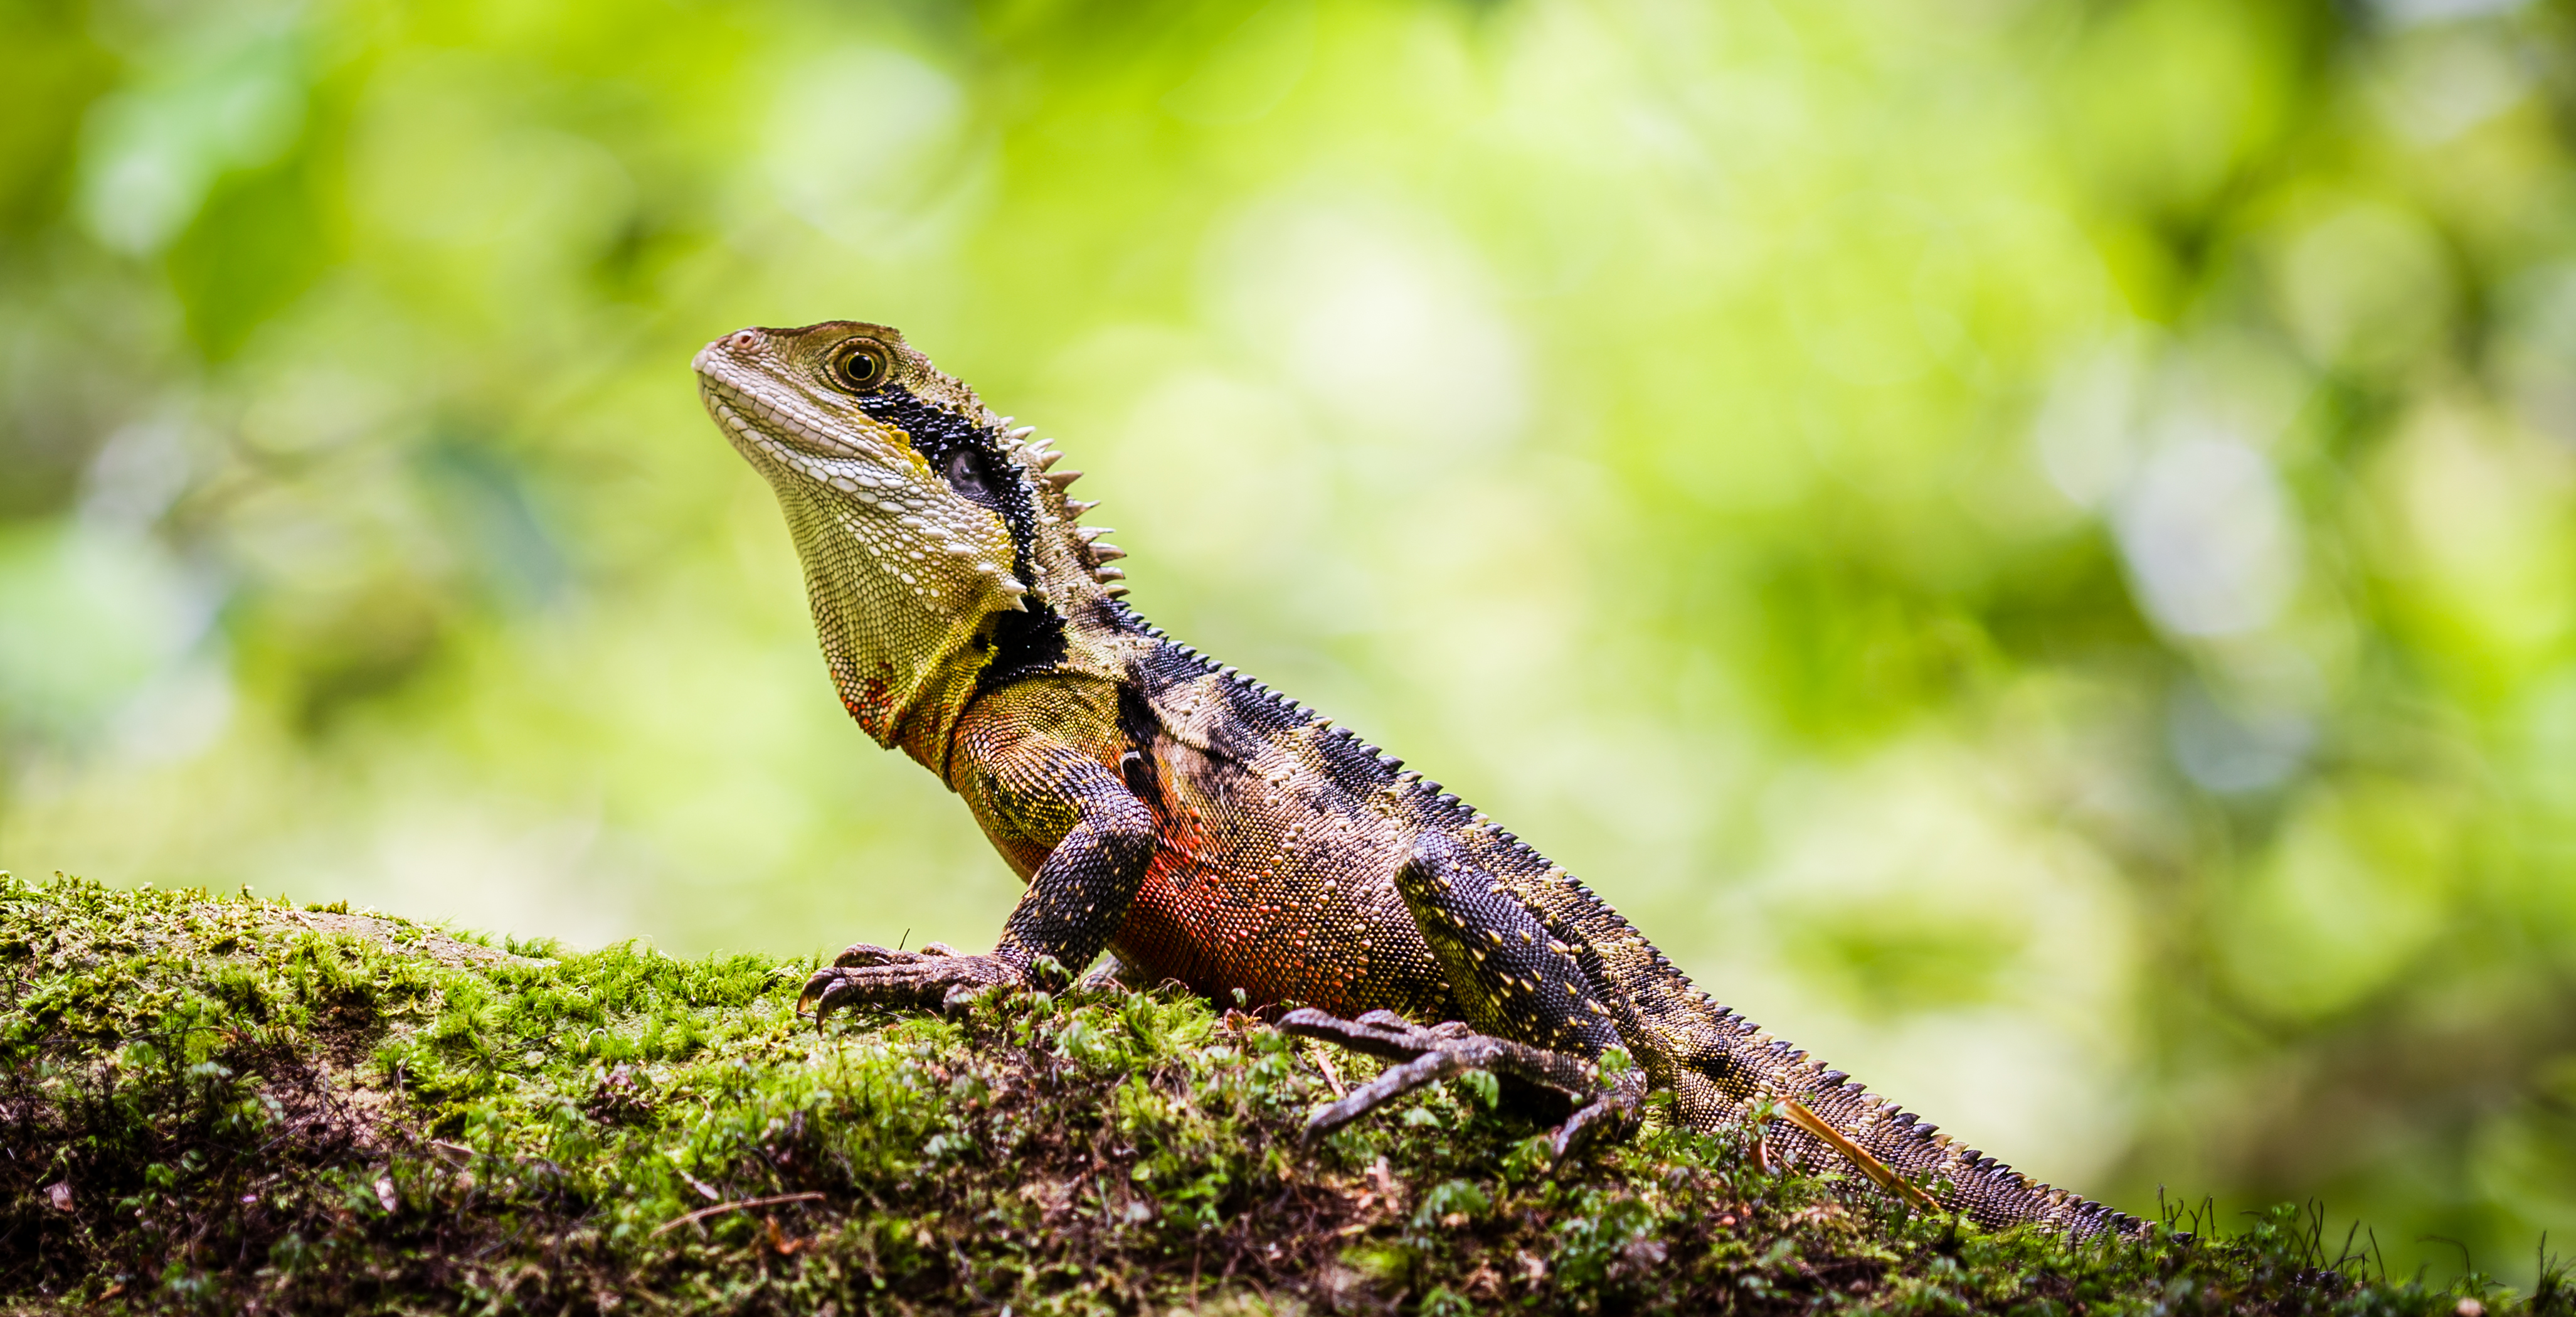 Australian_Eastern_Water_Dragon_basking_in_the_sun_at_Blue_Mountains_NSW_Australia